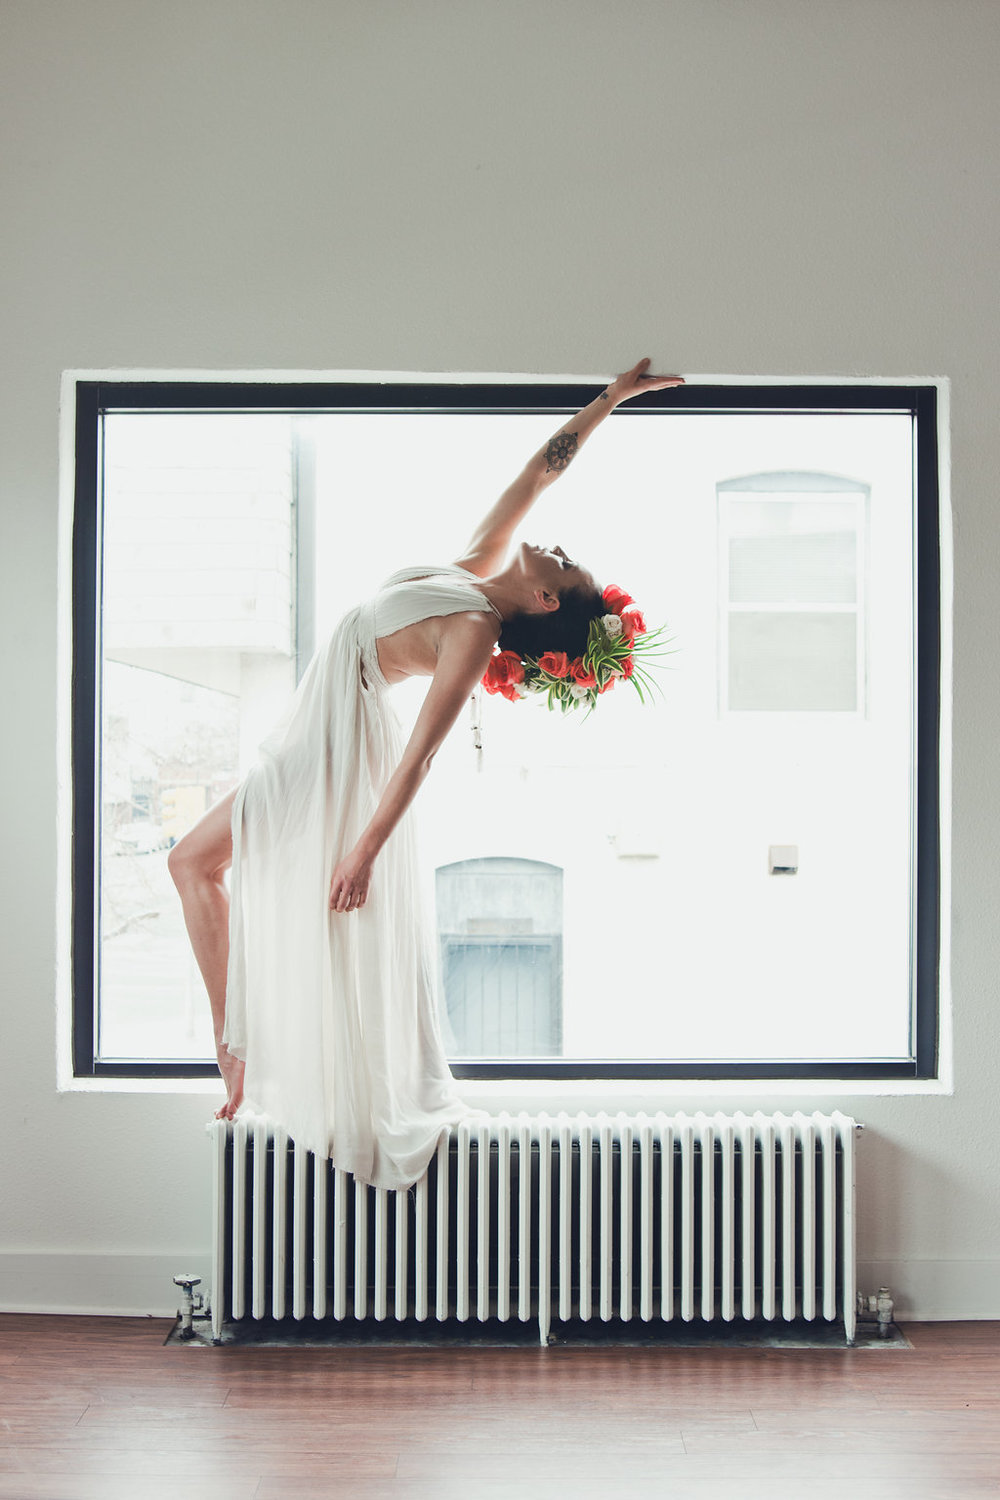 Lisa Rundall Wedding Photography Colorado model balancing on wall heater